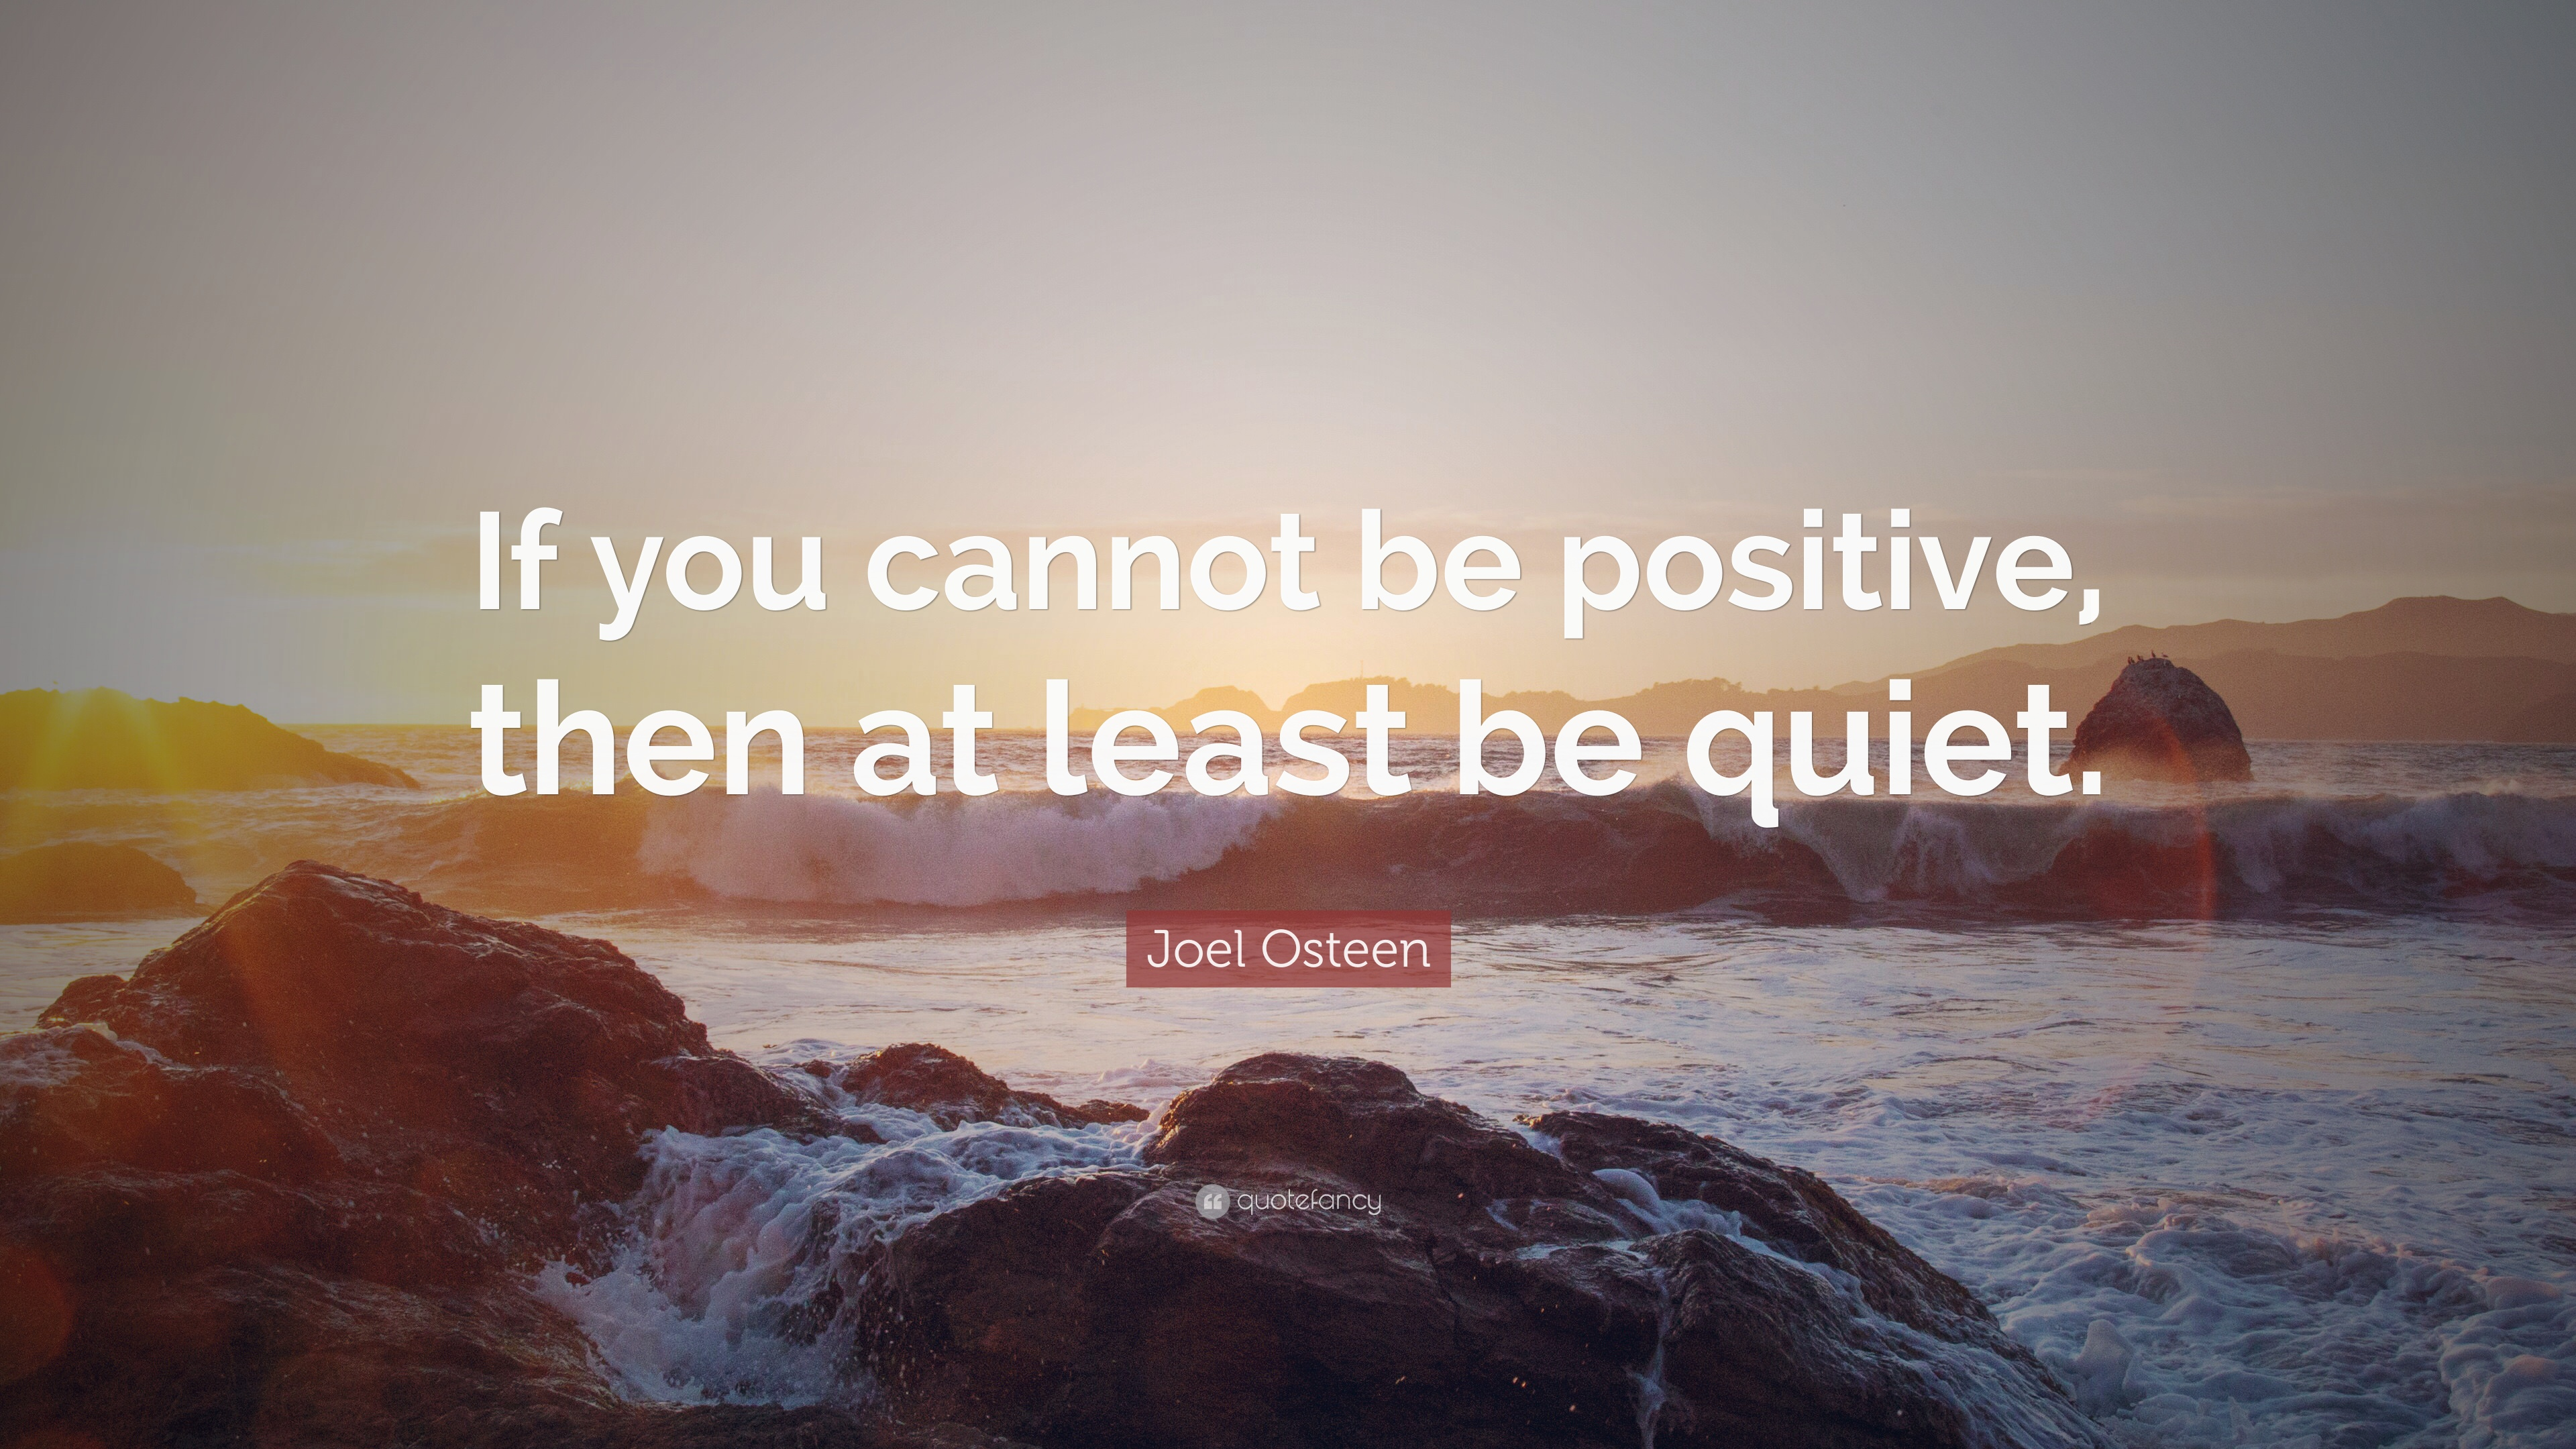 Genial Joel Osteen Quote: U201cIf You Cannot Be Positive, Then At Least Be Quiet